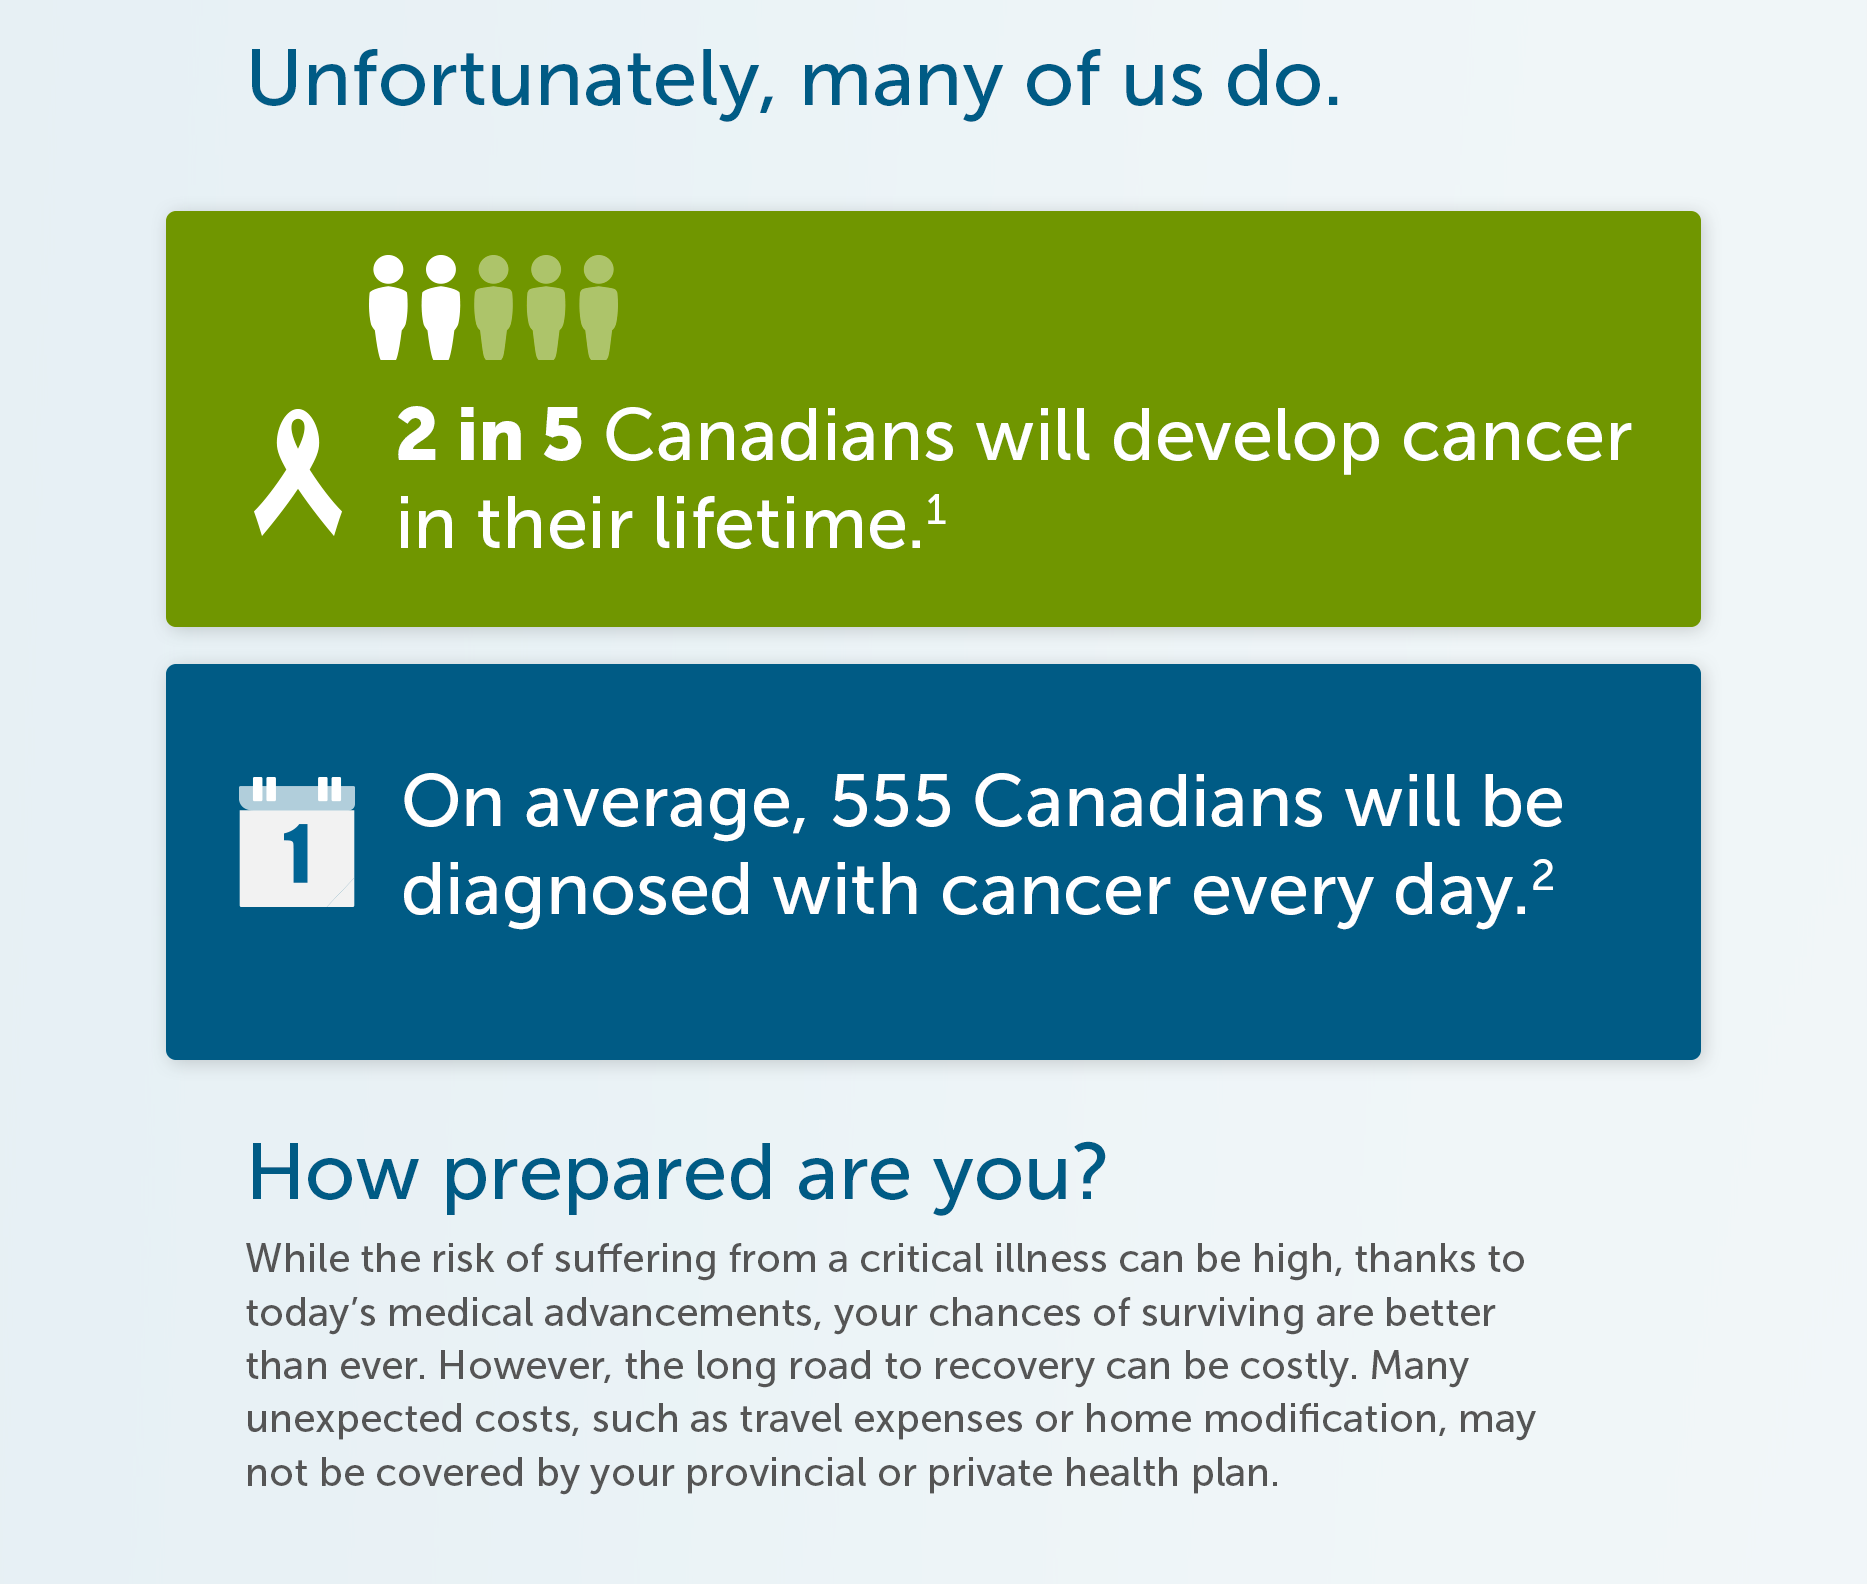 Unfortunately, many of us do. How prepared are you? While the risk of suffering from a critical illness can be high, thanks to today's medical advancements, your chances of surviving are better than ever. However, the long road to recovery can be costly. Many unexpected costs, such as travel expenses or home modification, may not be covered by your provincial or private health plan.